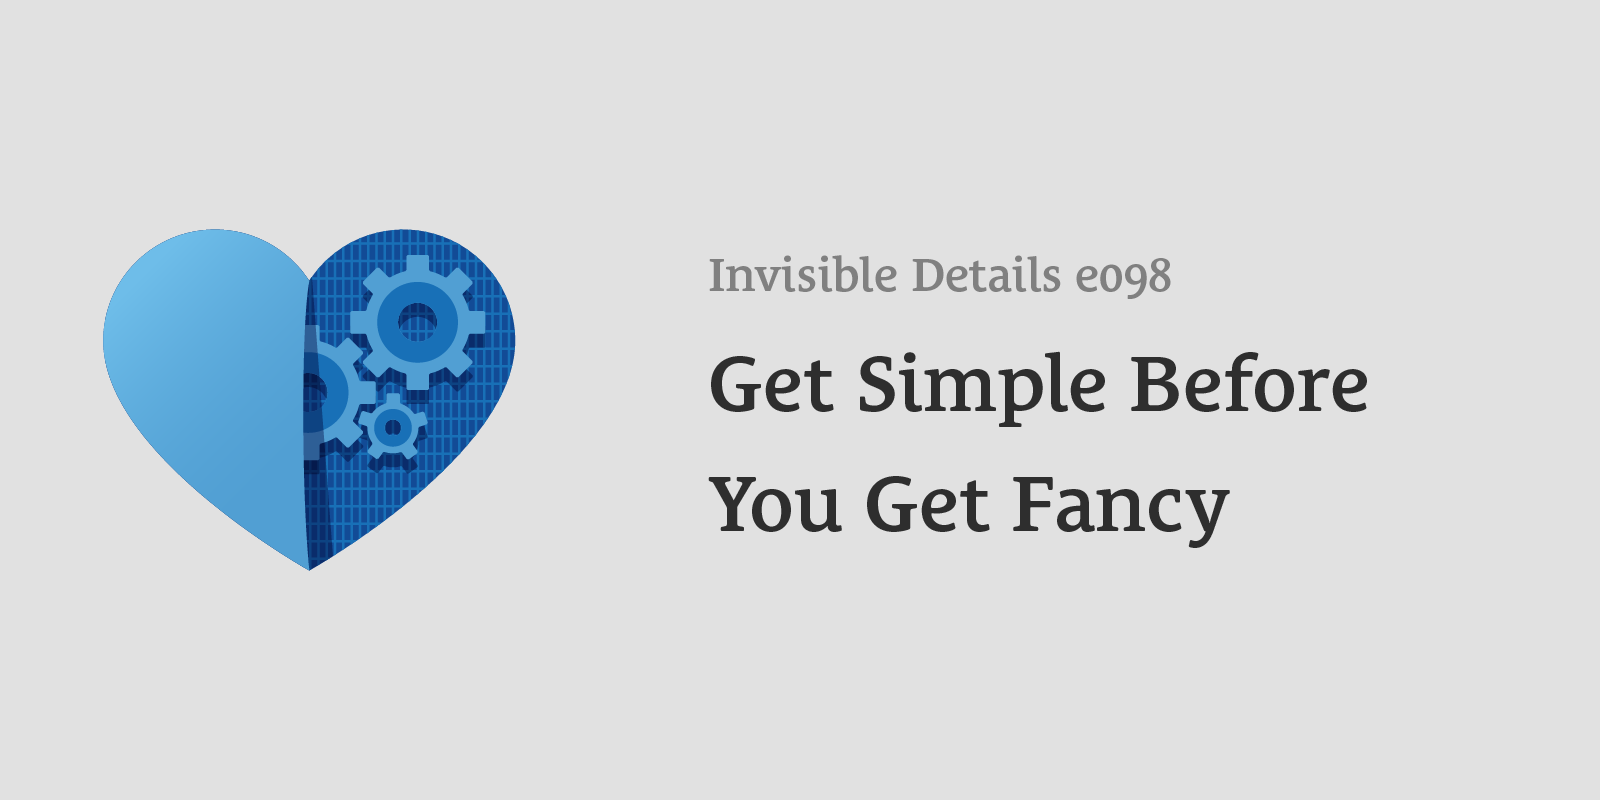 Get Simple Before You Get Fancy